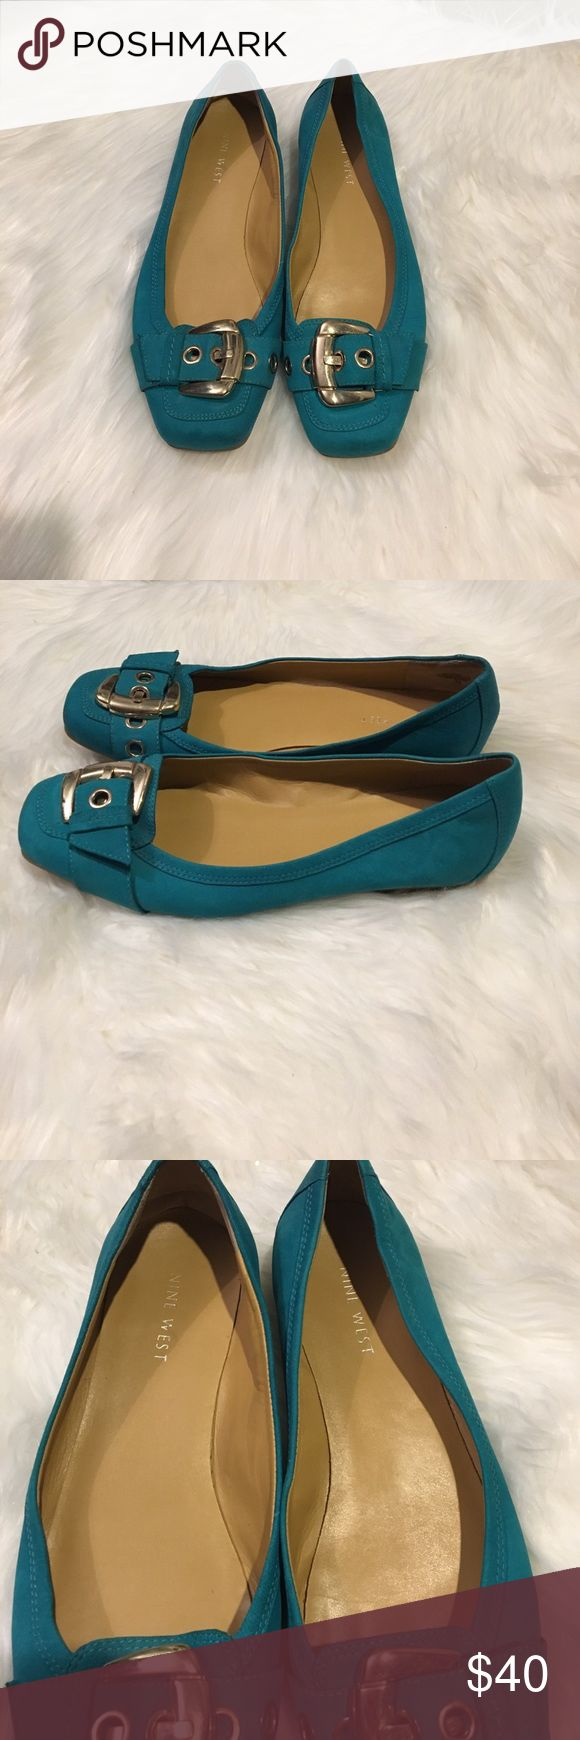 Nine West teal flats size 8 Nine West teal flats size 8. Good condition. Smoke free home. Offers welcomed Nine West Shoes Flats & Loafers